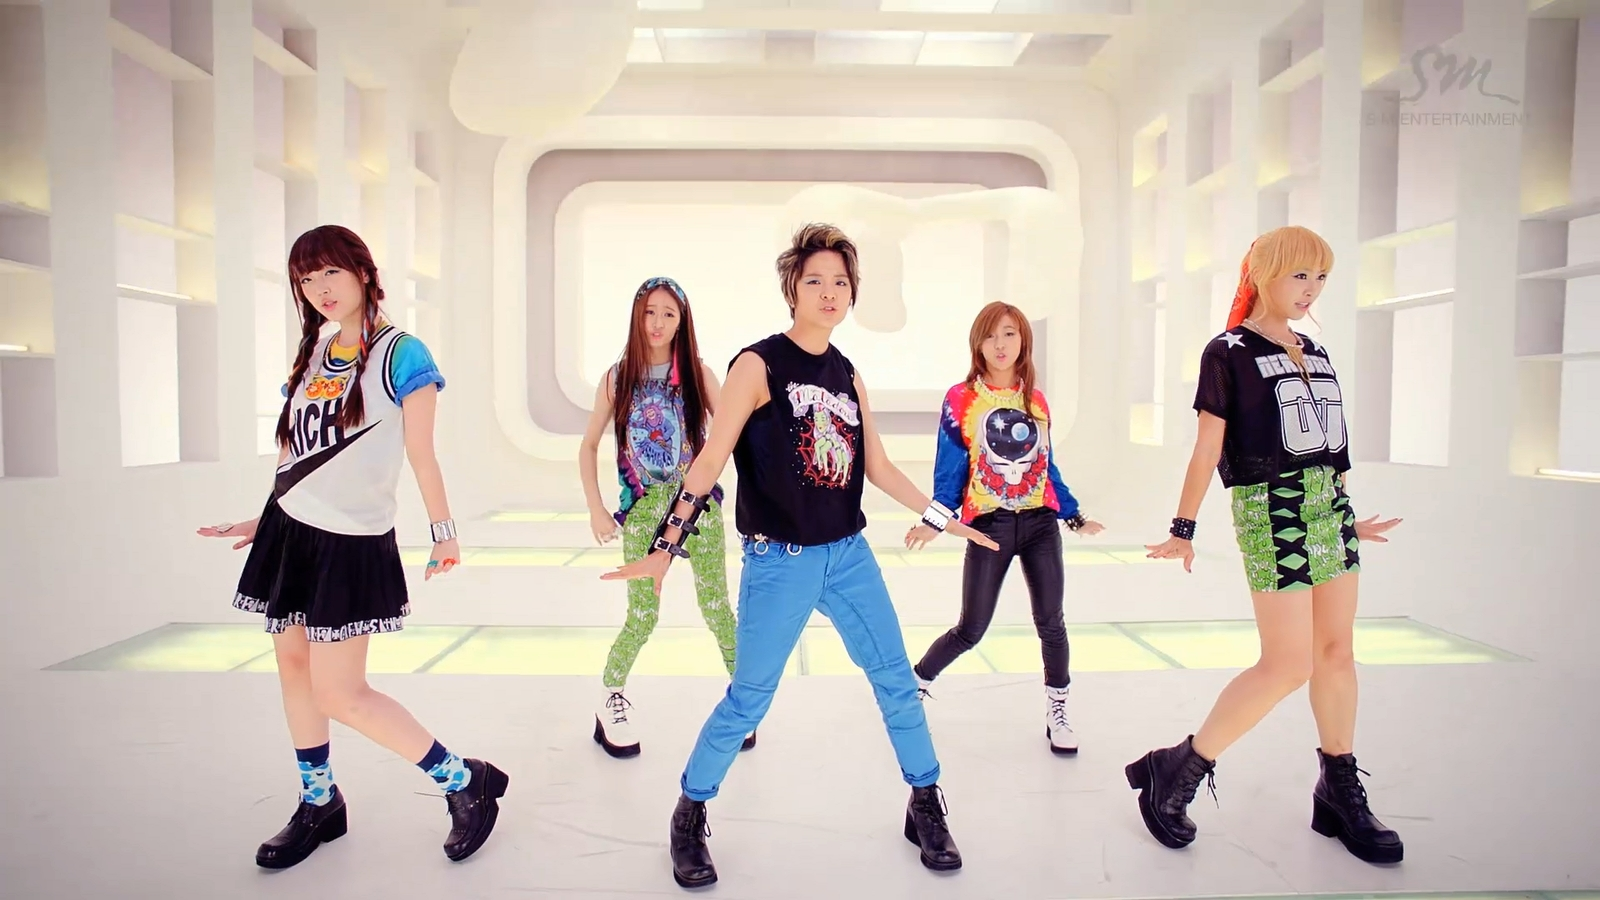 k-pop ♪♫ ♪♫ ♪♫ ♪♫ ♪♫: MV f(x) '' Electric Shock ... F(x) Electric Shock